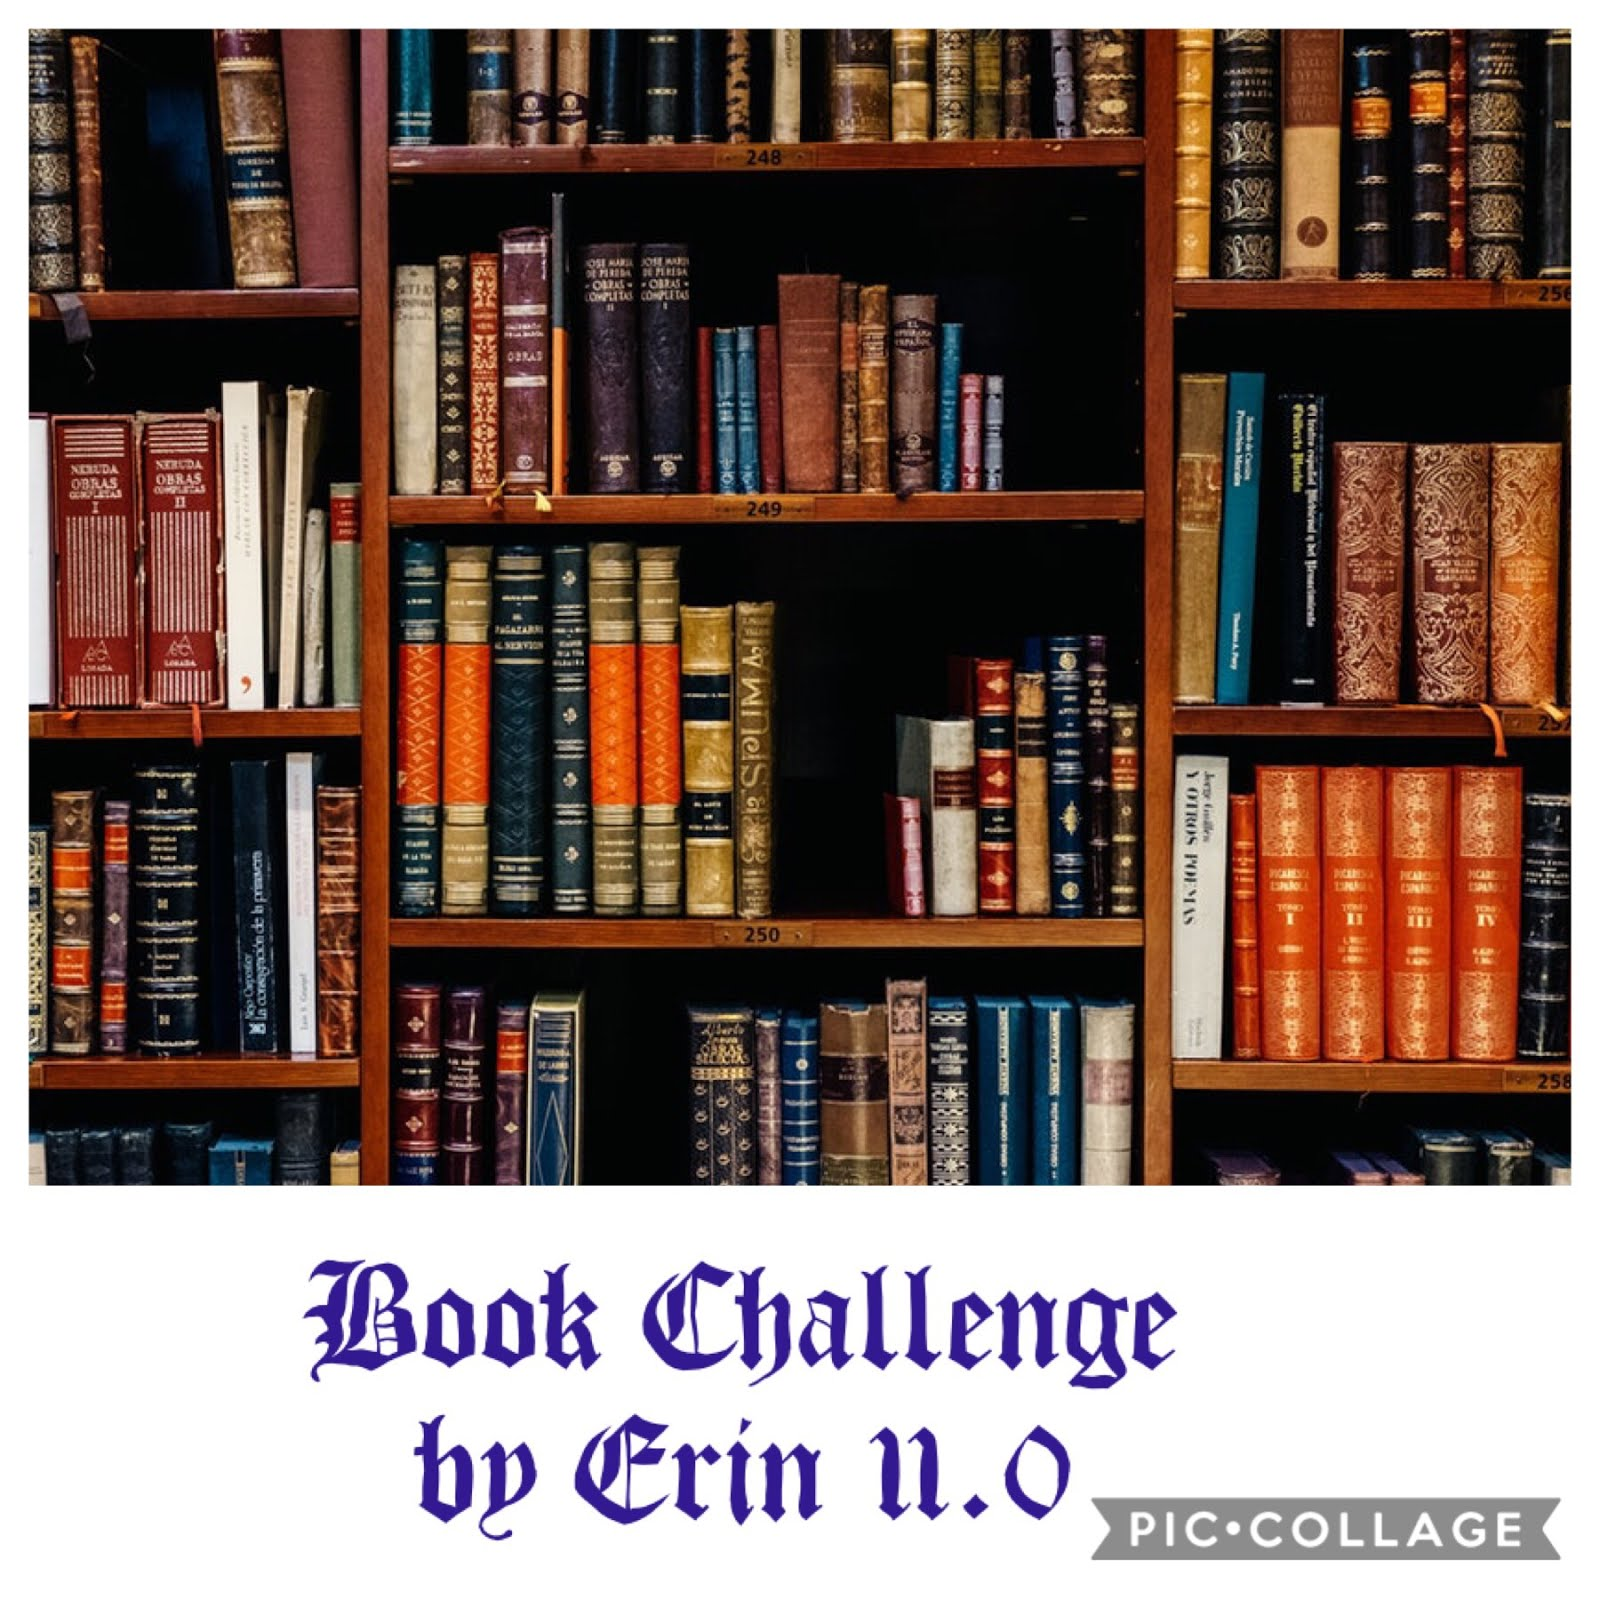 Book Challenge by Erin 11.0